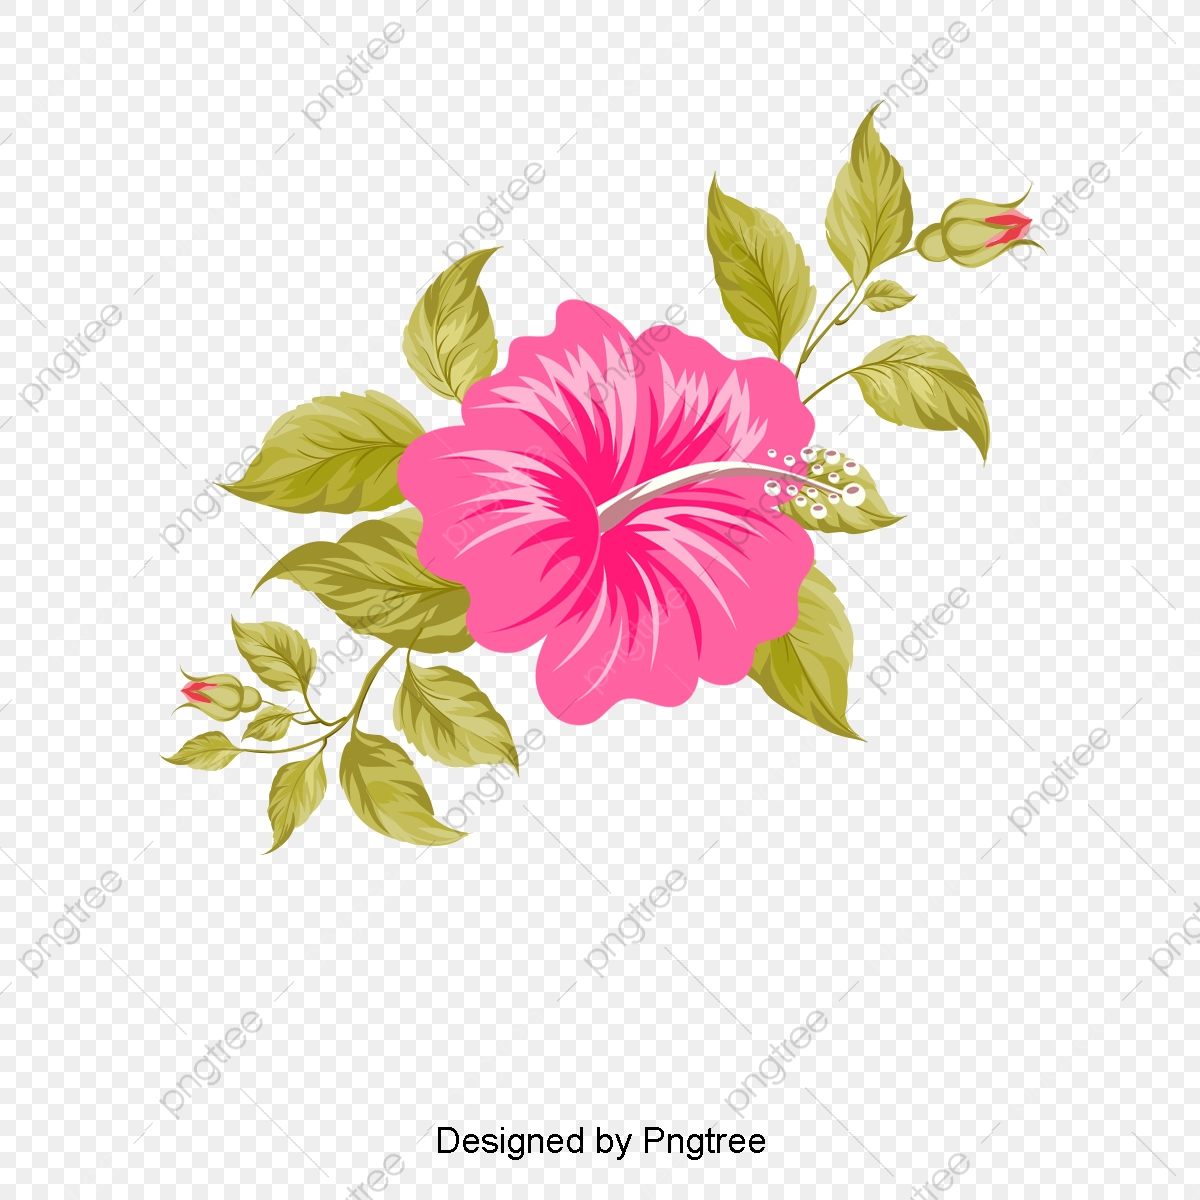 Hawaii Hand Painted Flowers, Hawaii, Tropic, Hand PNG and Vector.